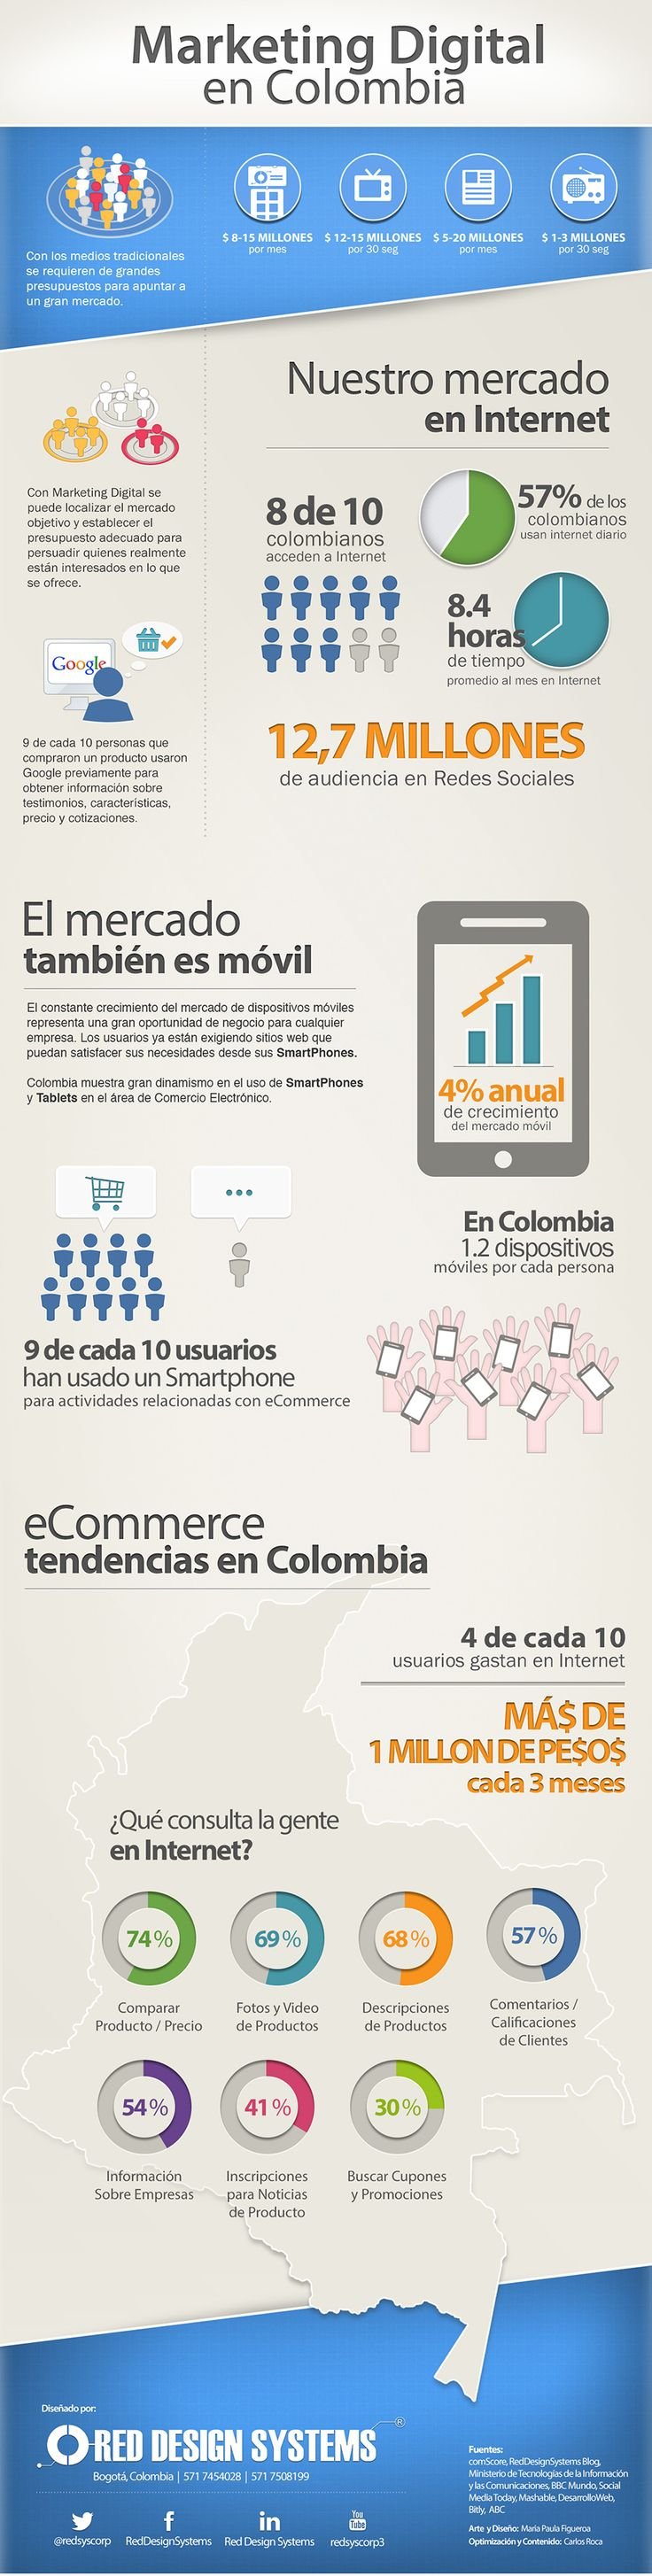 Marketing Digital en Colombia. #Infografía en español